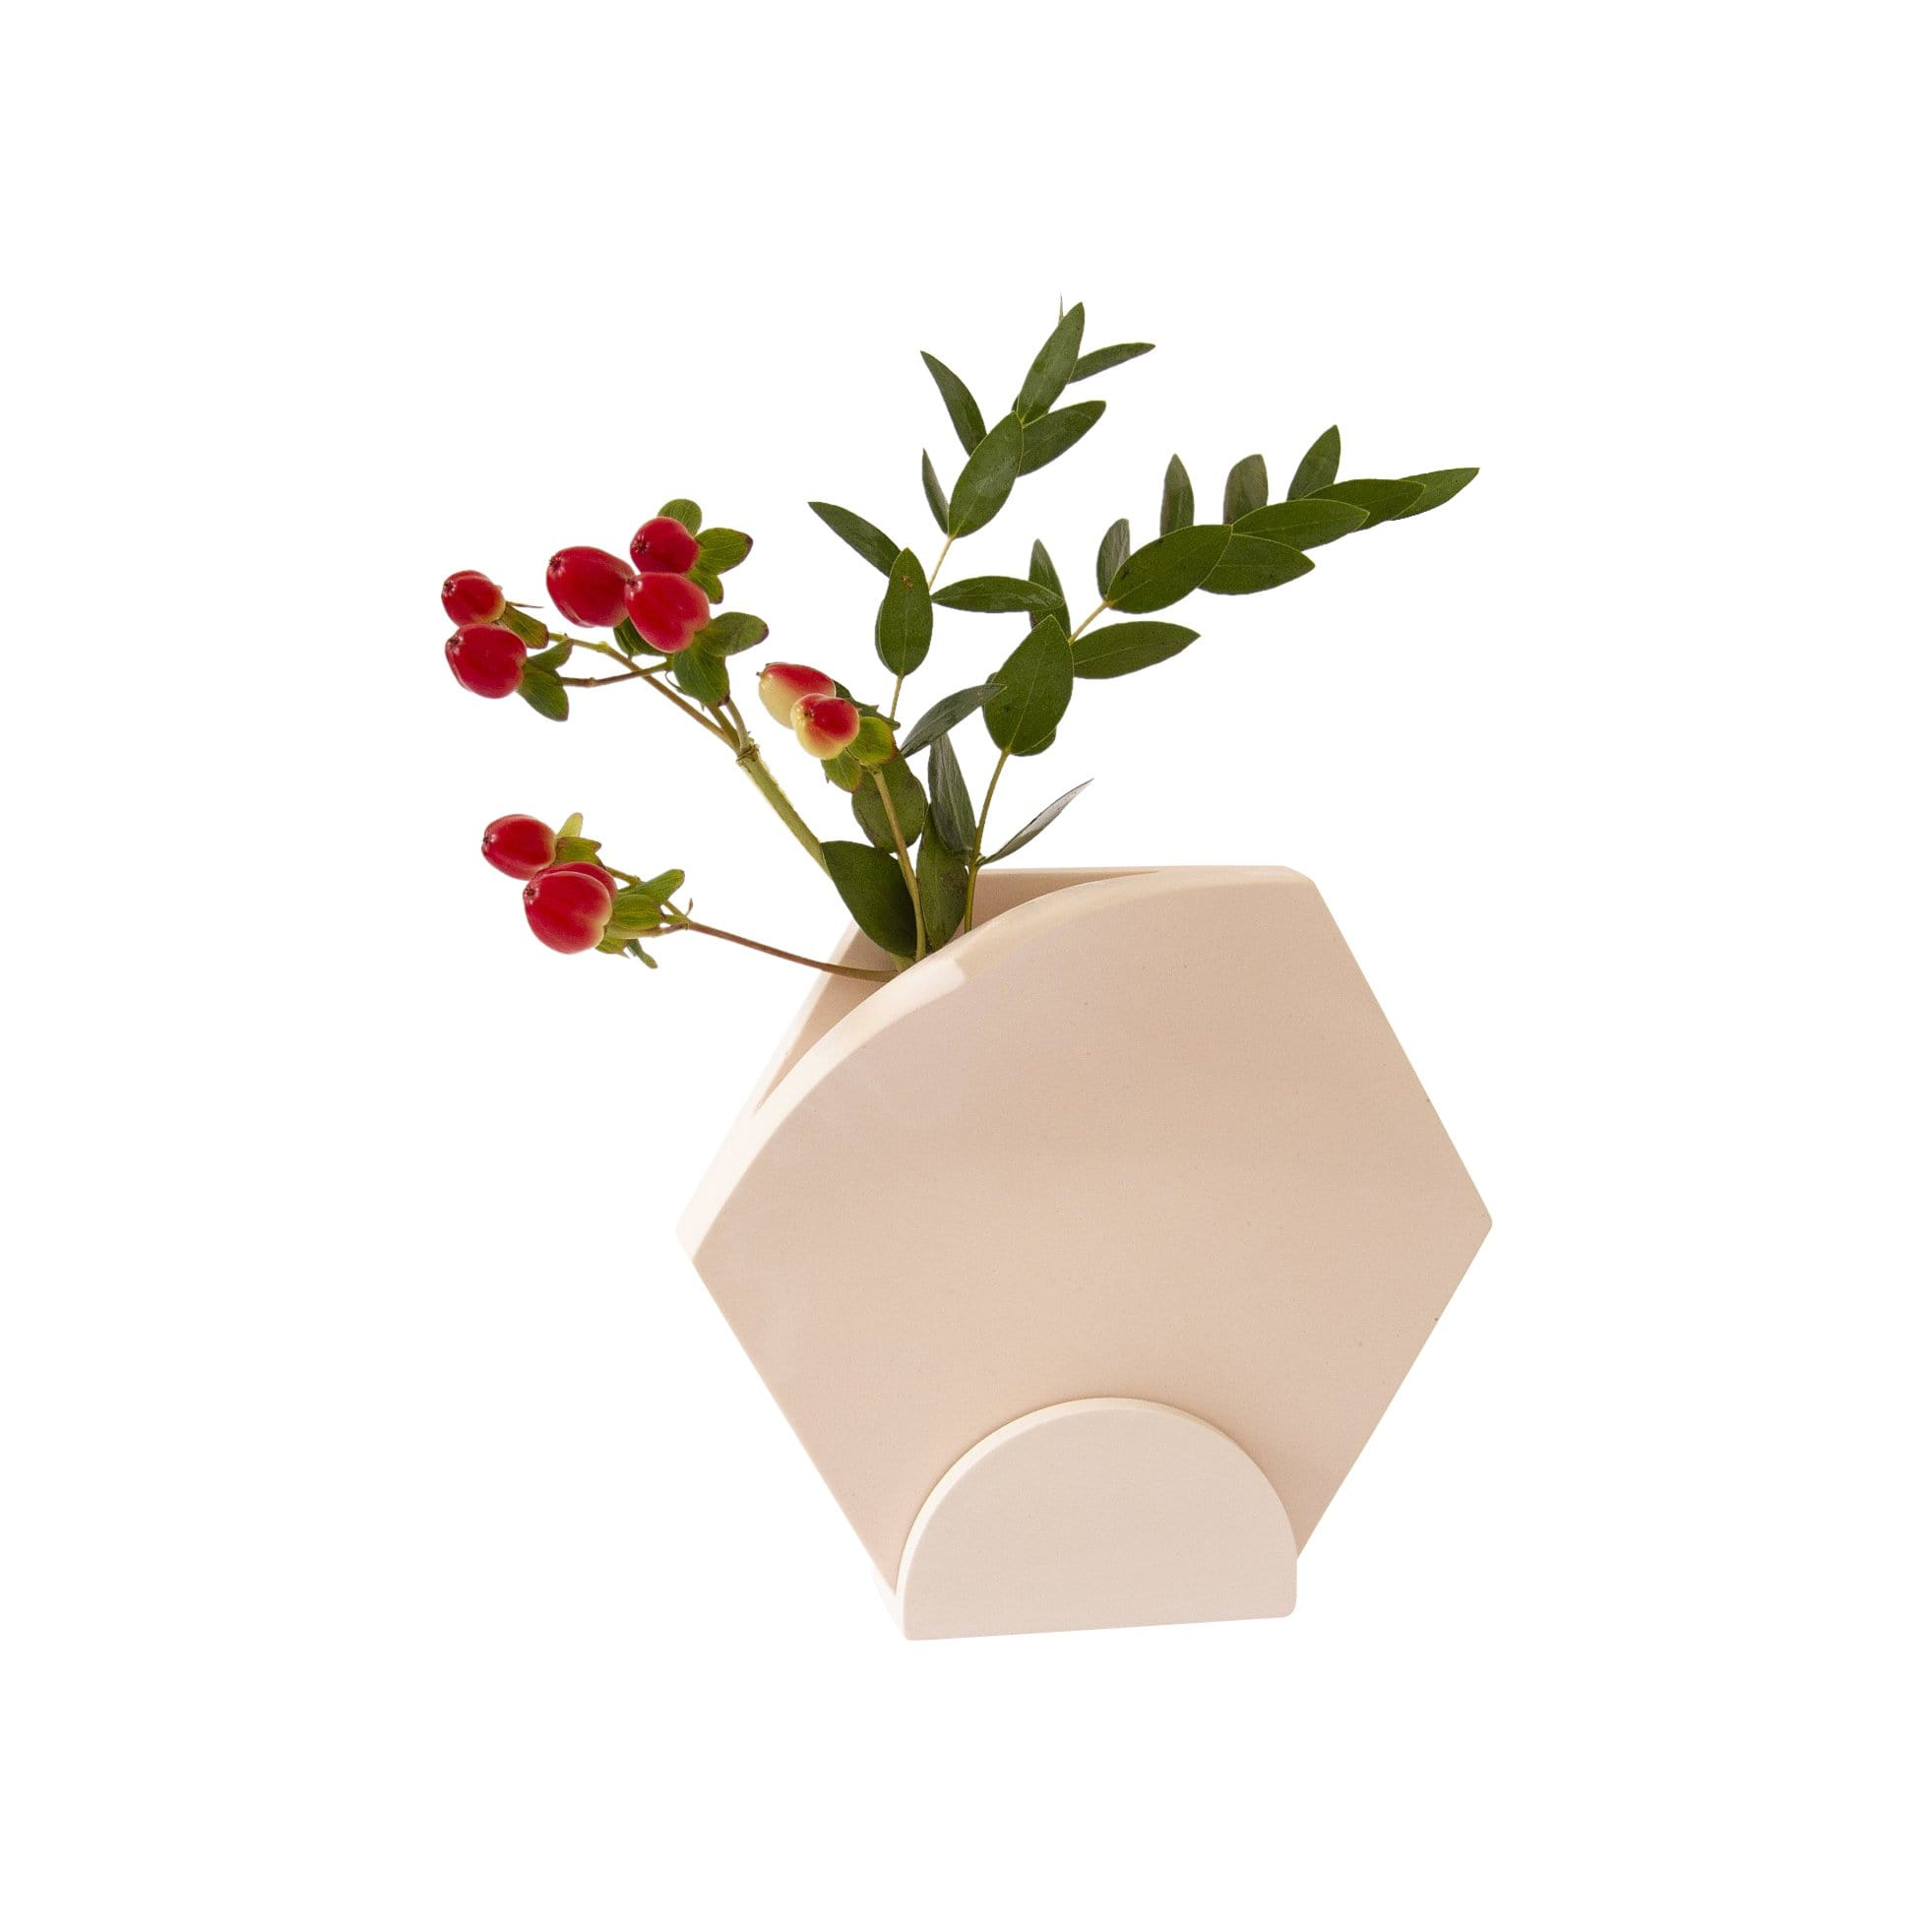 Extra&ordinary Design Planters, Pots + Vases Hexagonal Table Top Vase